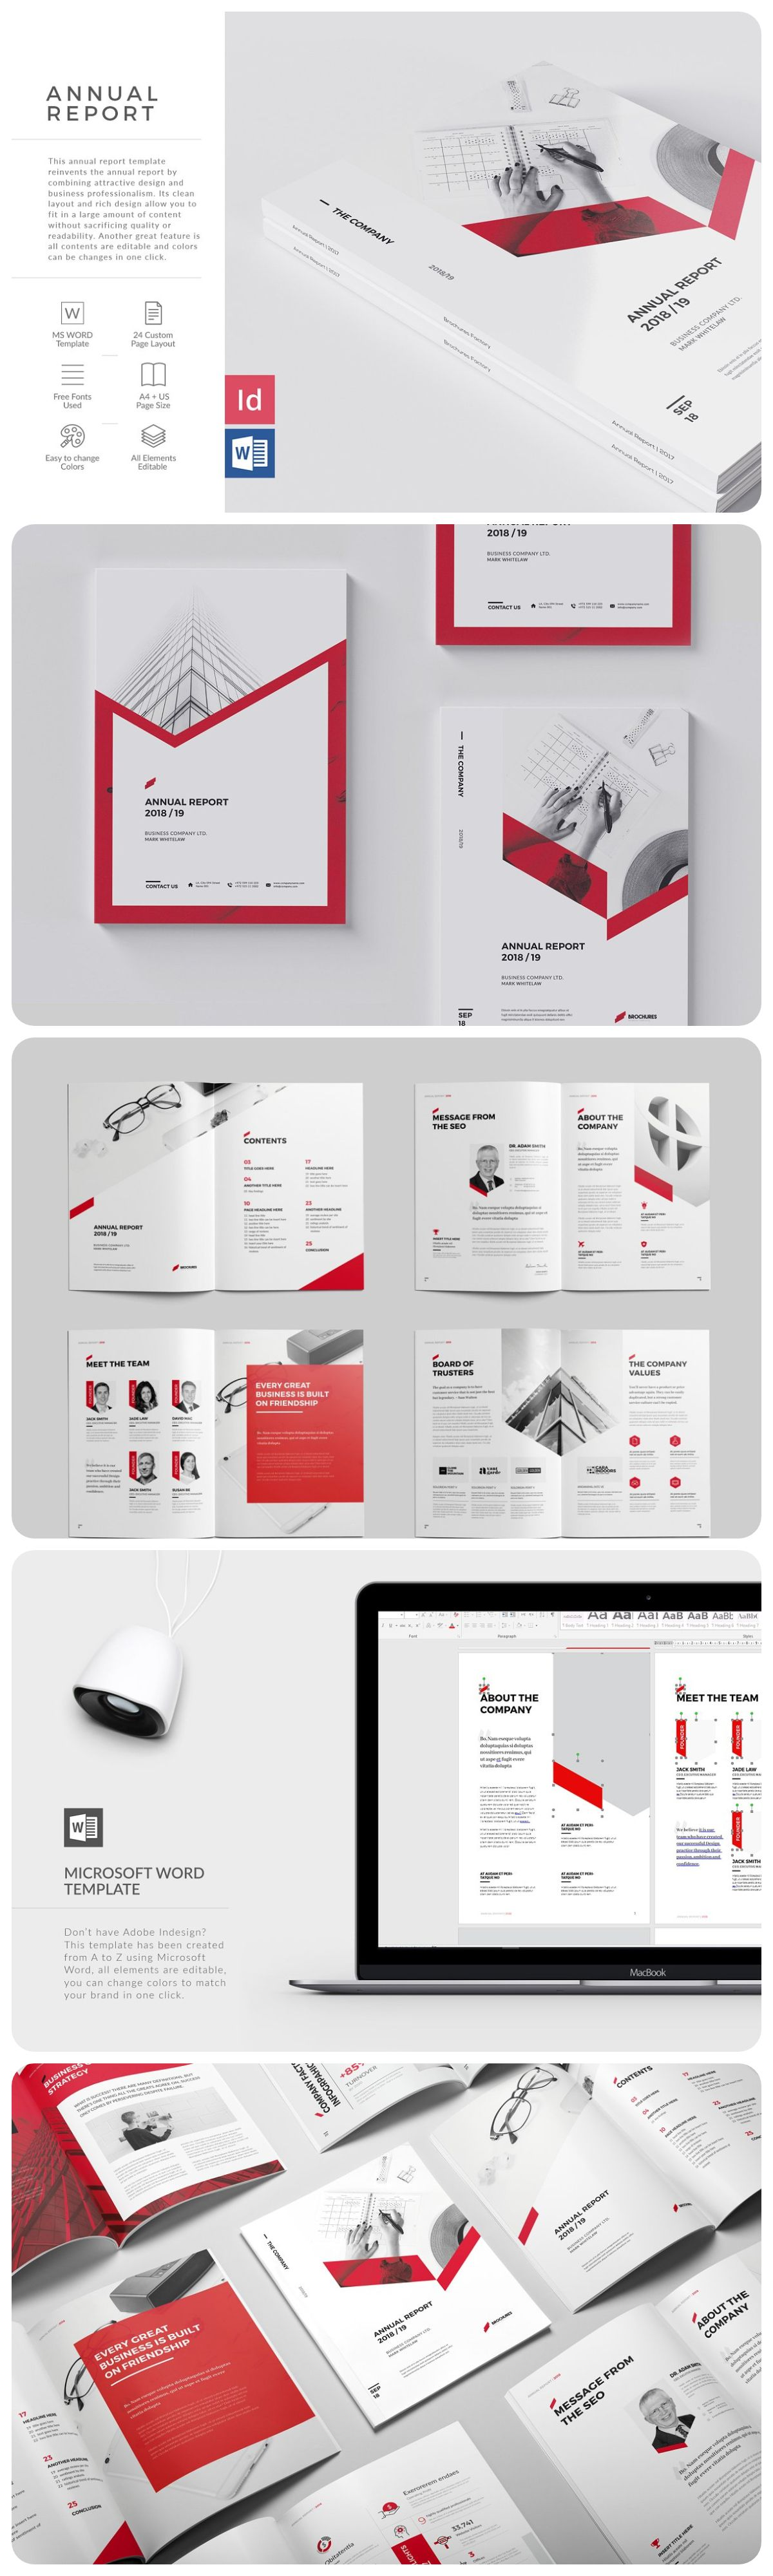 This Annual Report Template Reinvents The Annual Report By